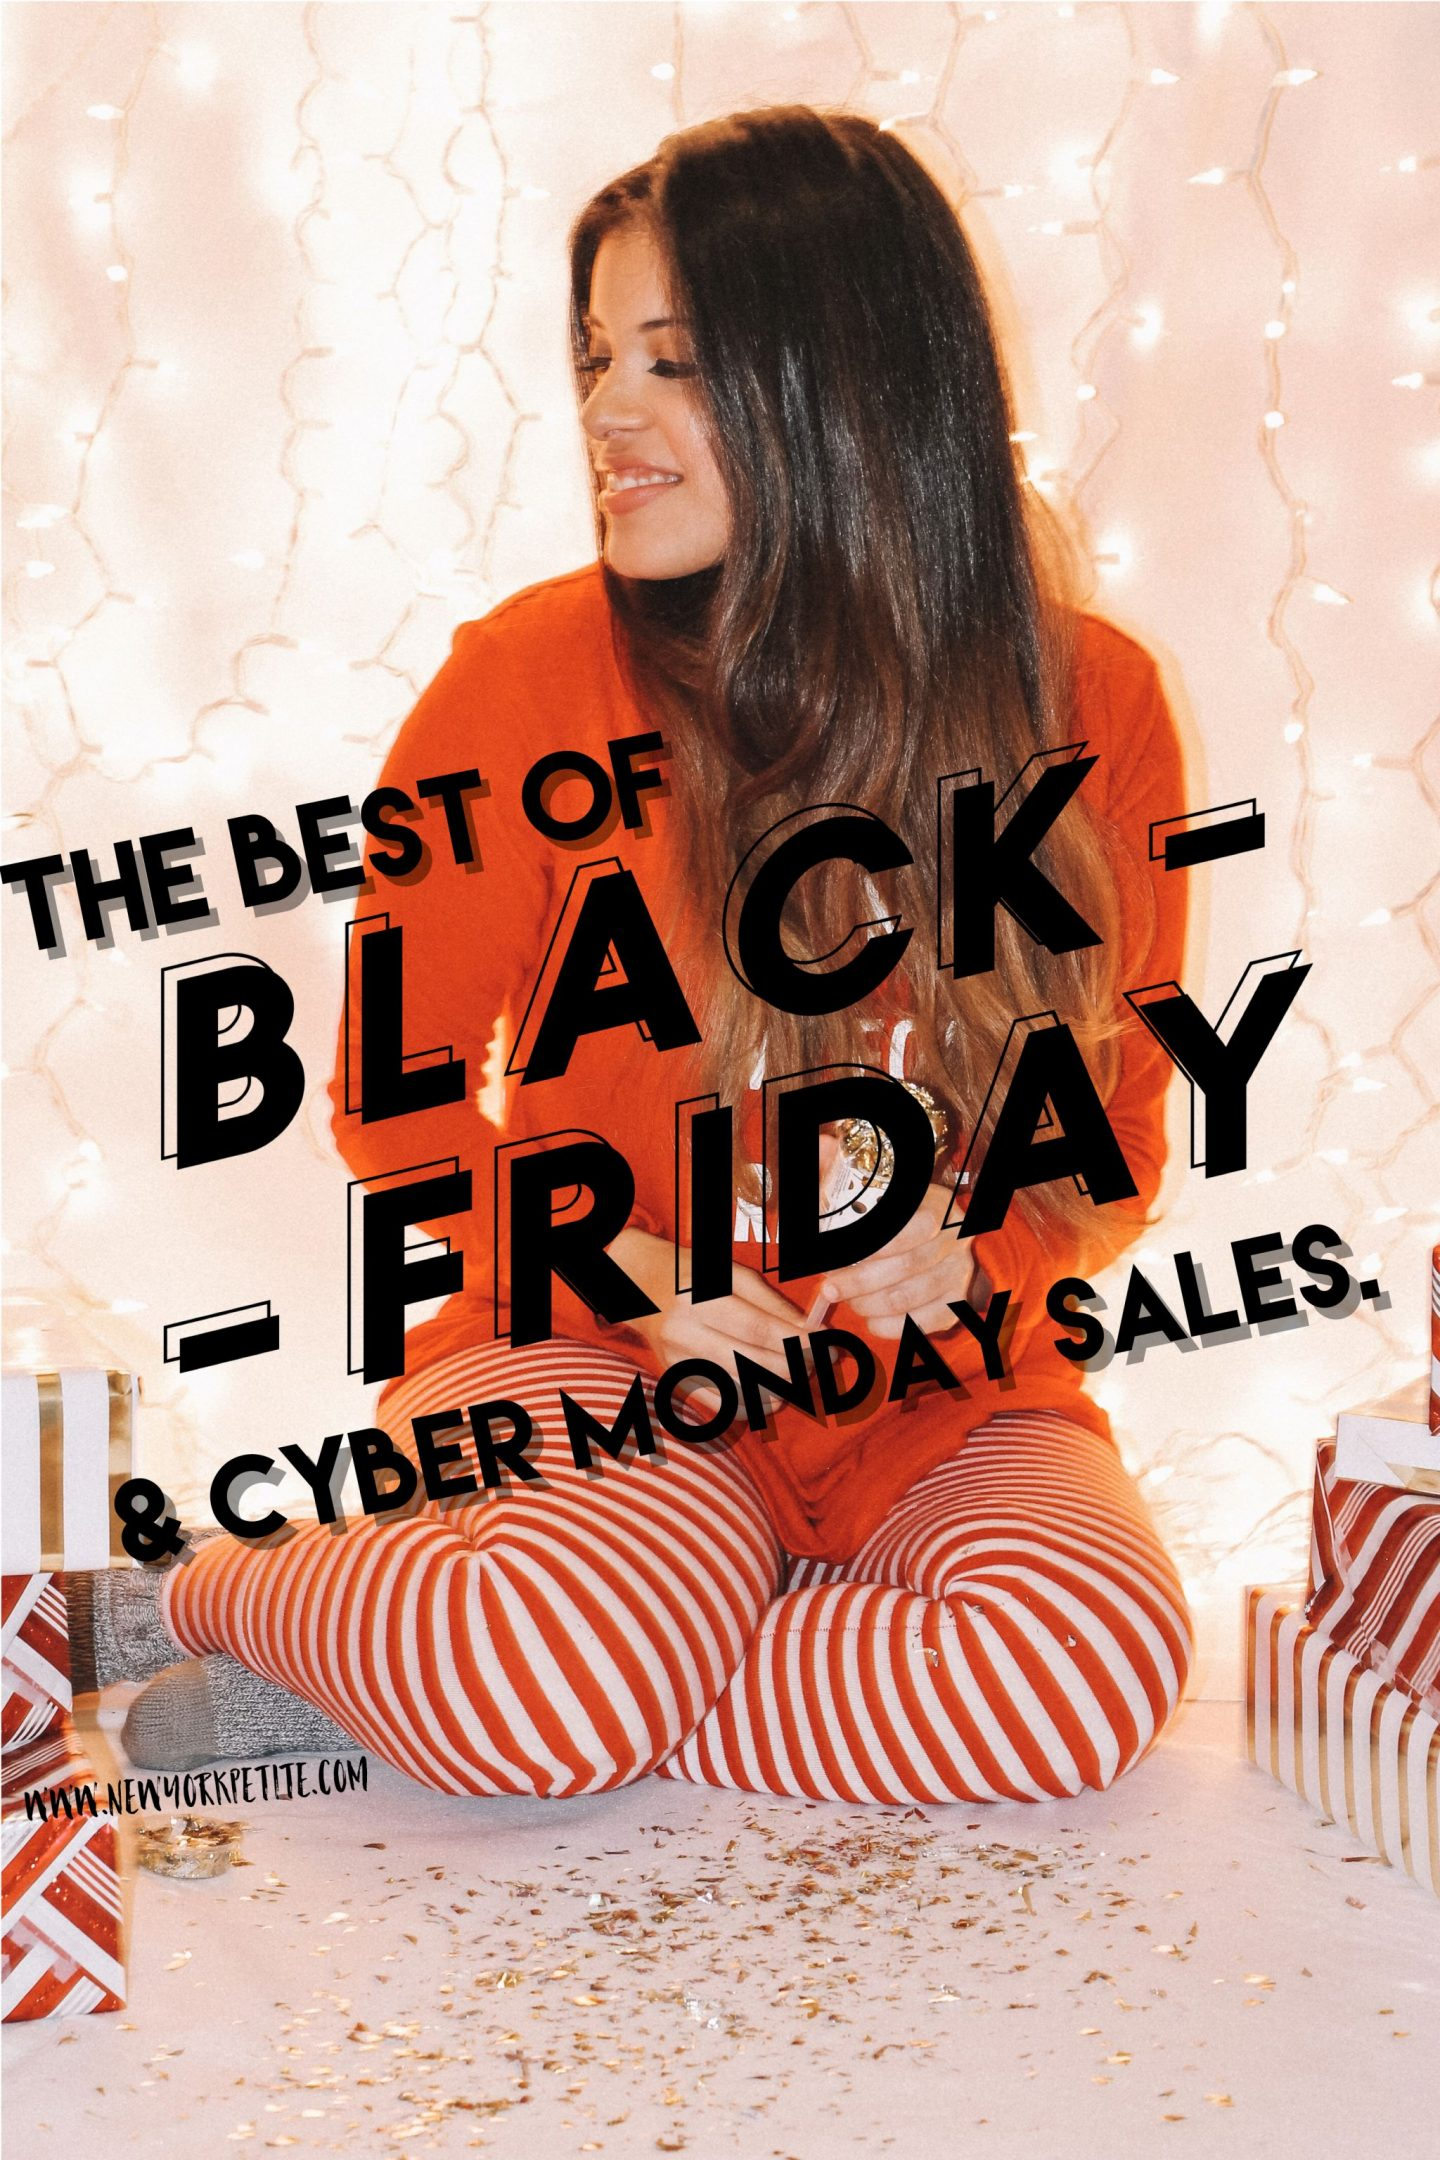 black friday sales, black friday, cyber monday sales, cyber monday, christmas shopping, christmas, gifts, presents, christmas pajamas